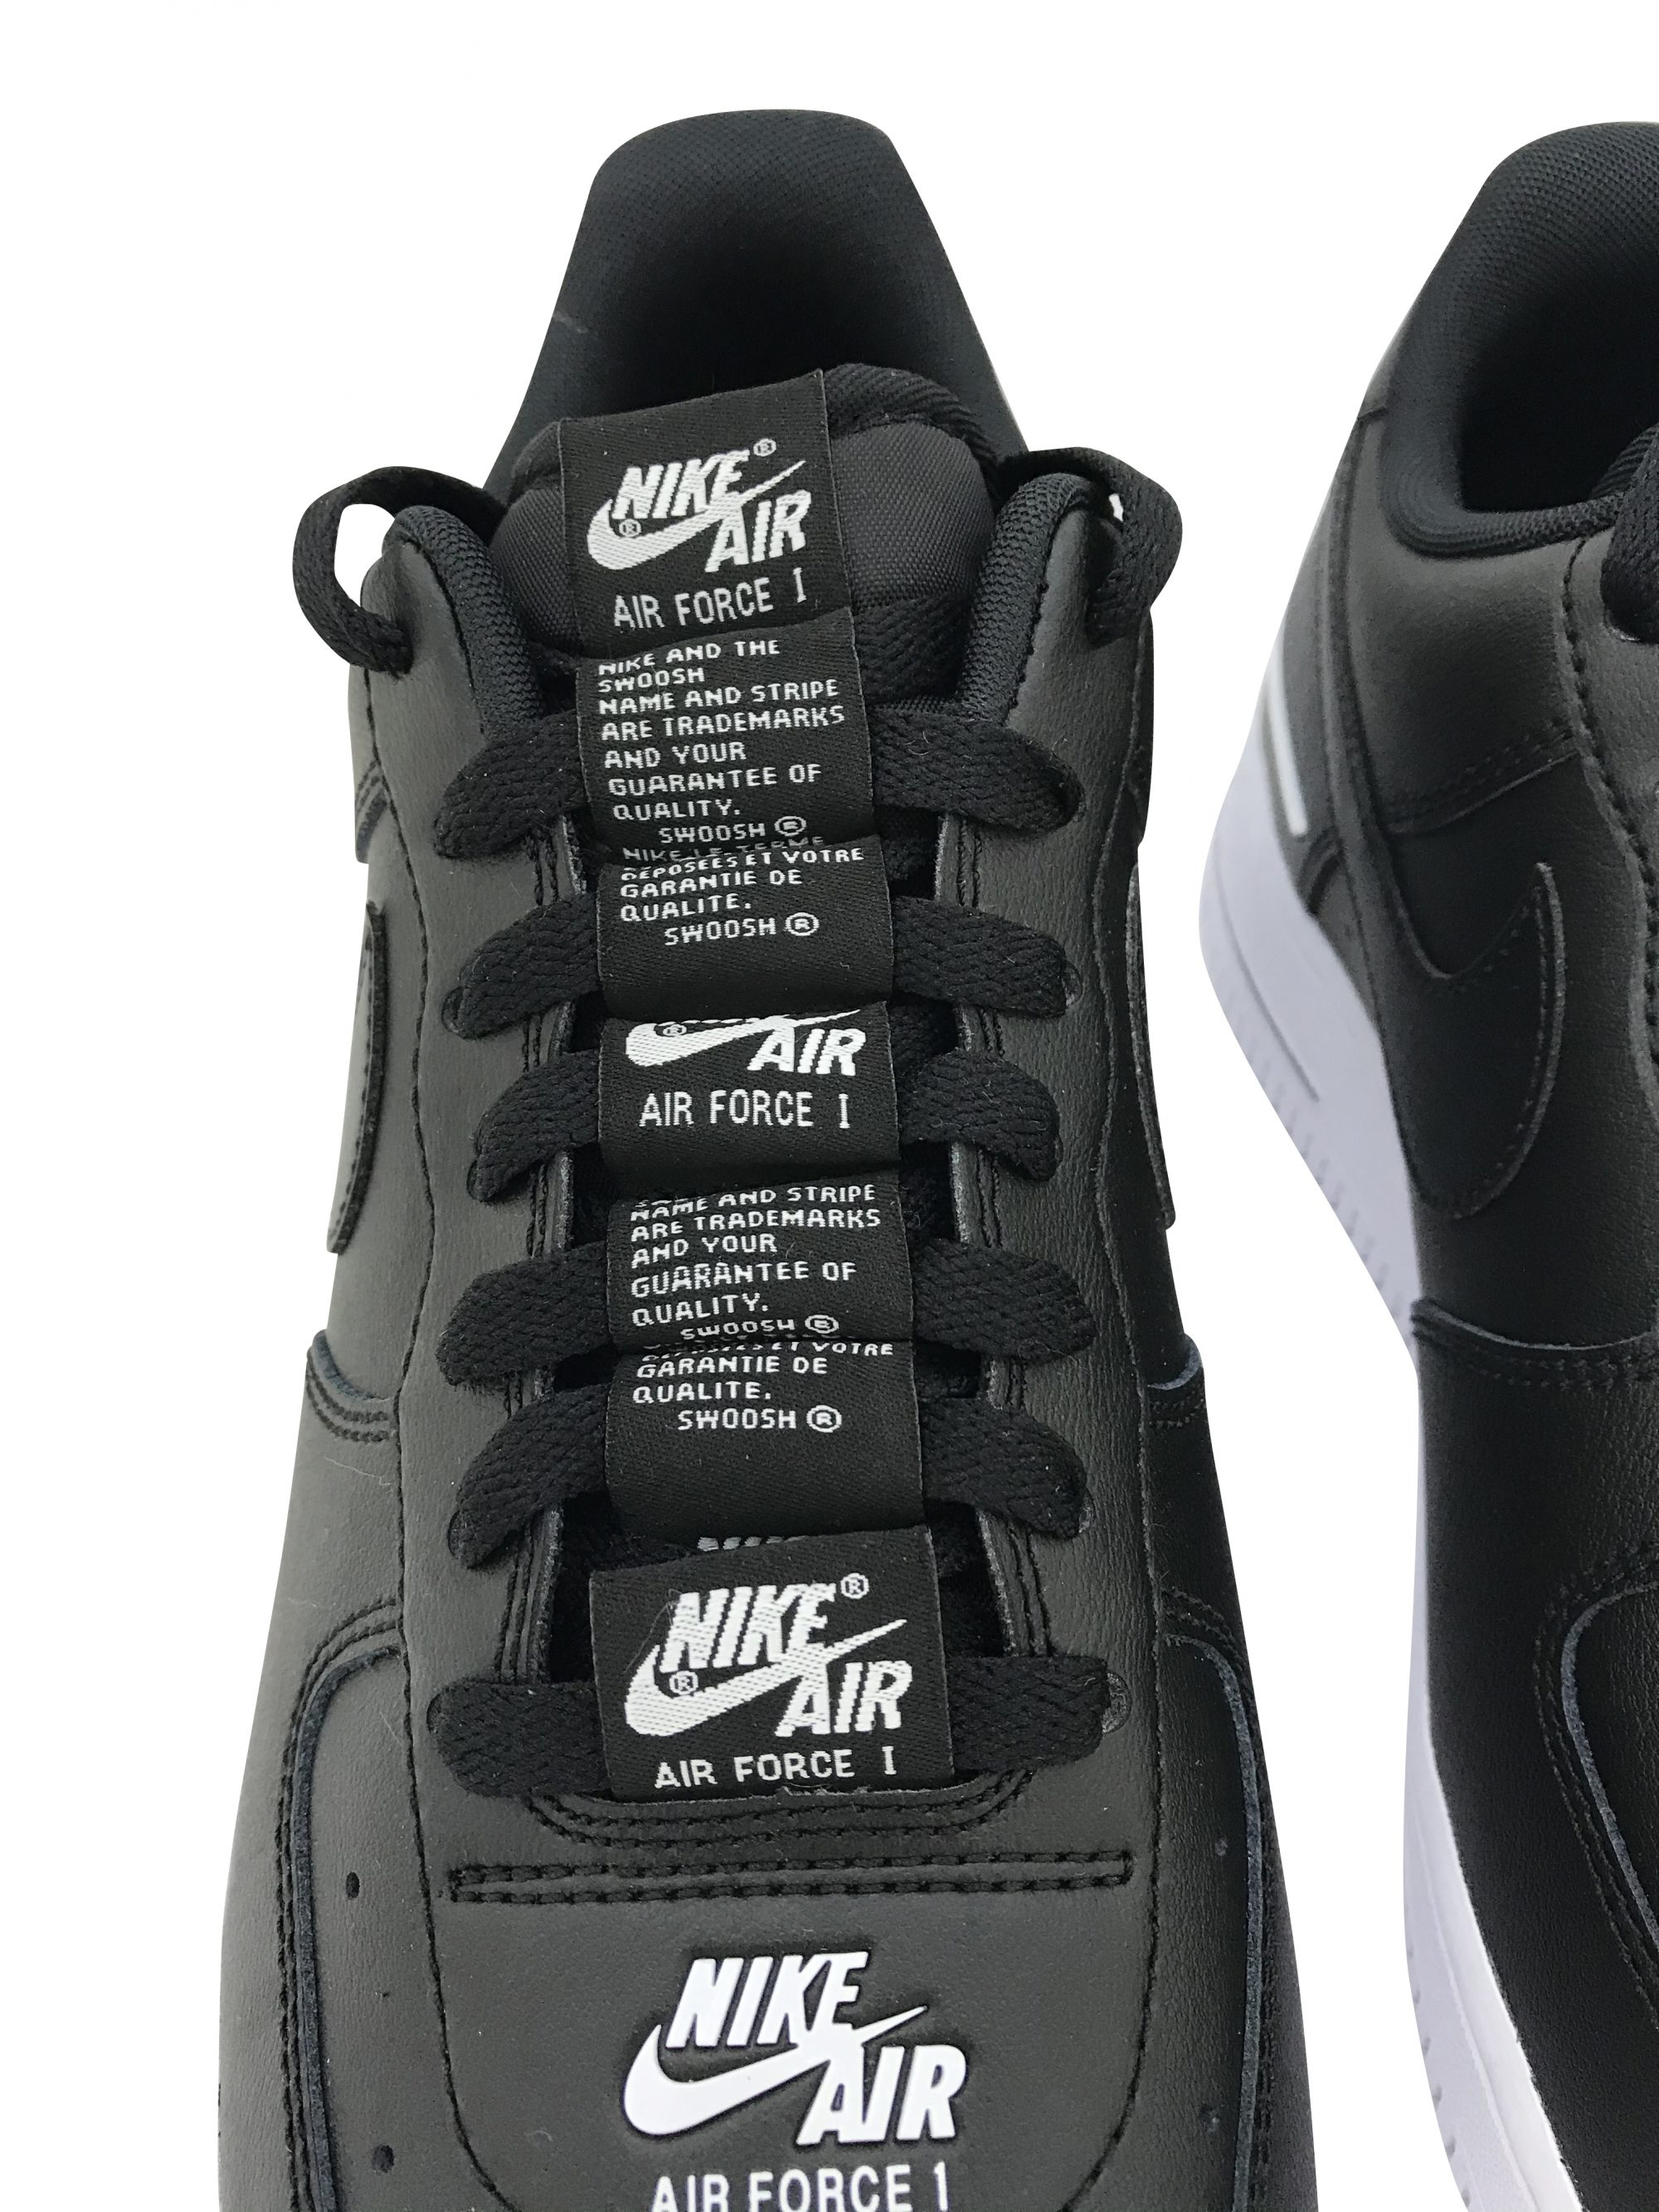 NIKE AIR FORCE 1 LOW DOUBLE CJ1379 001